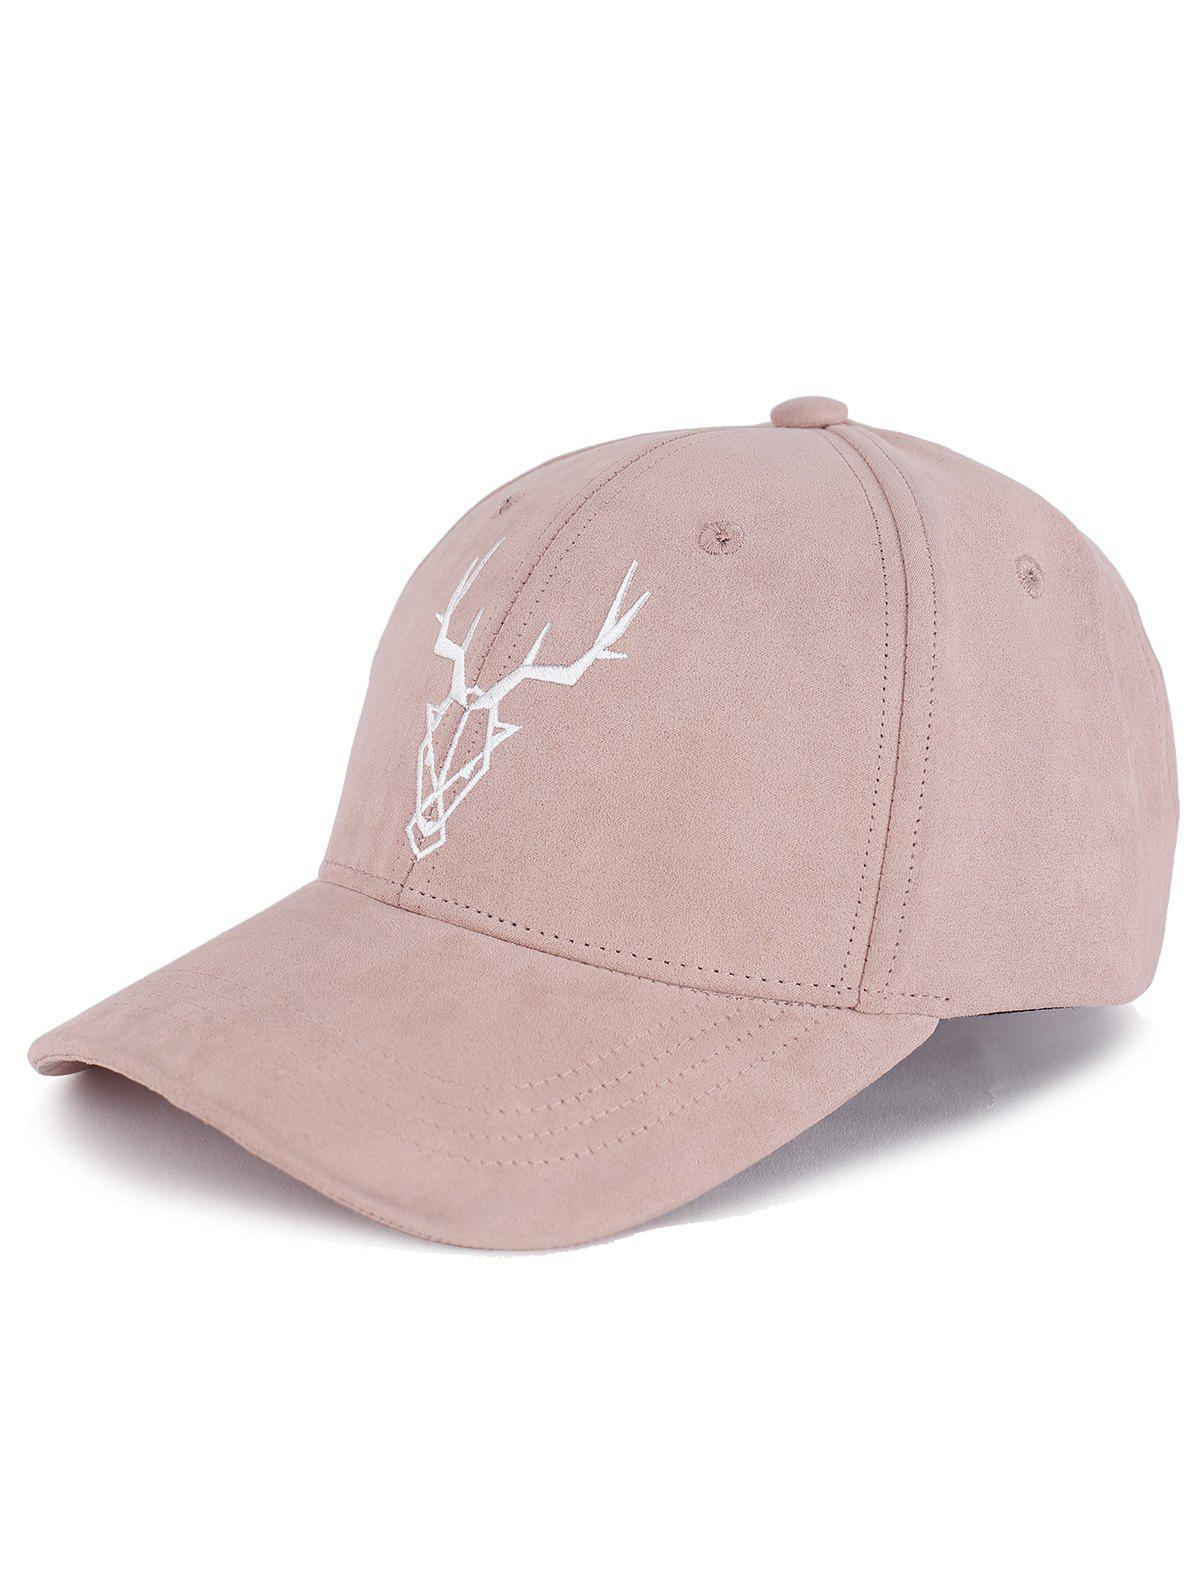 50% OFF   2019 Outdoor Elk Head Pattern Faux Suede Baseball Hat ... 2f14689c114